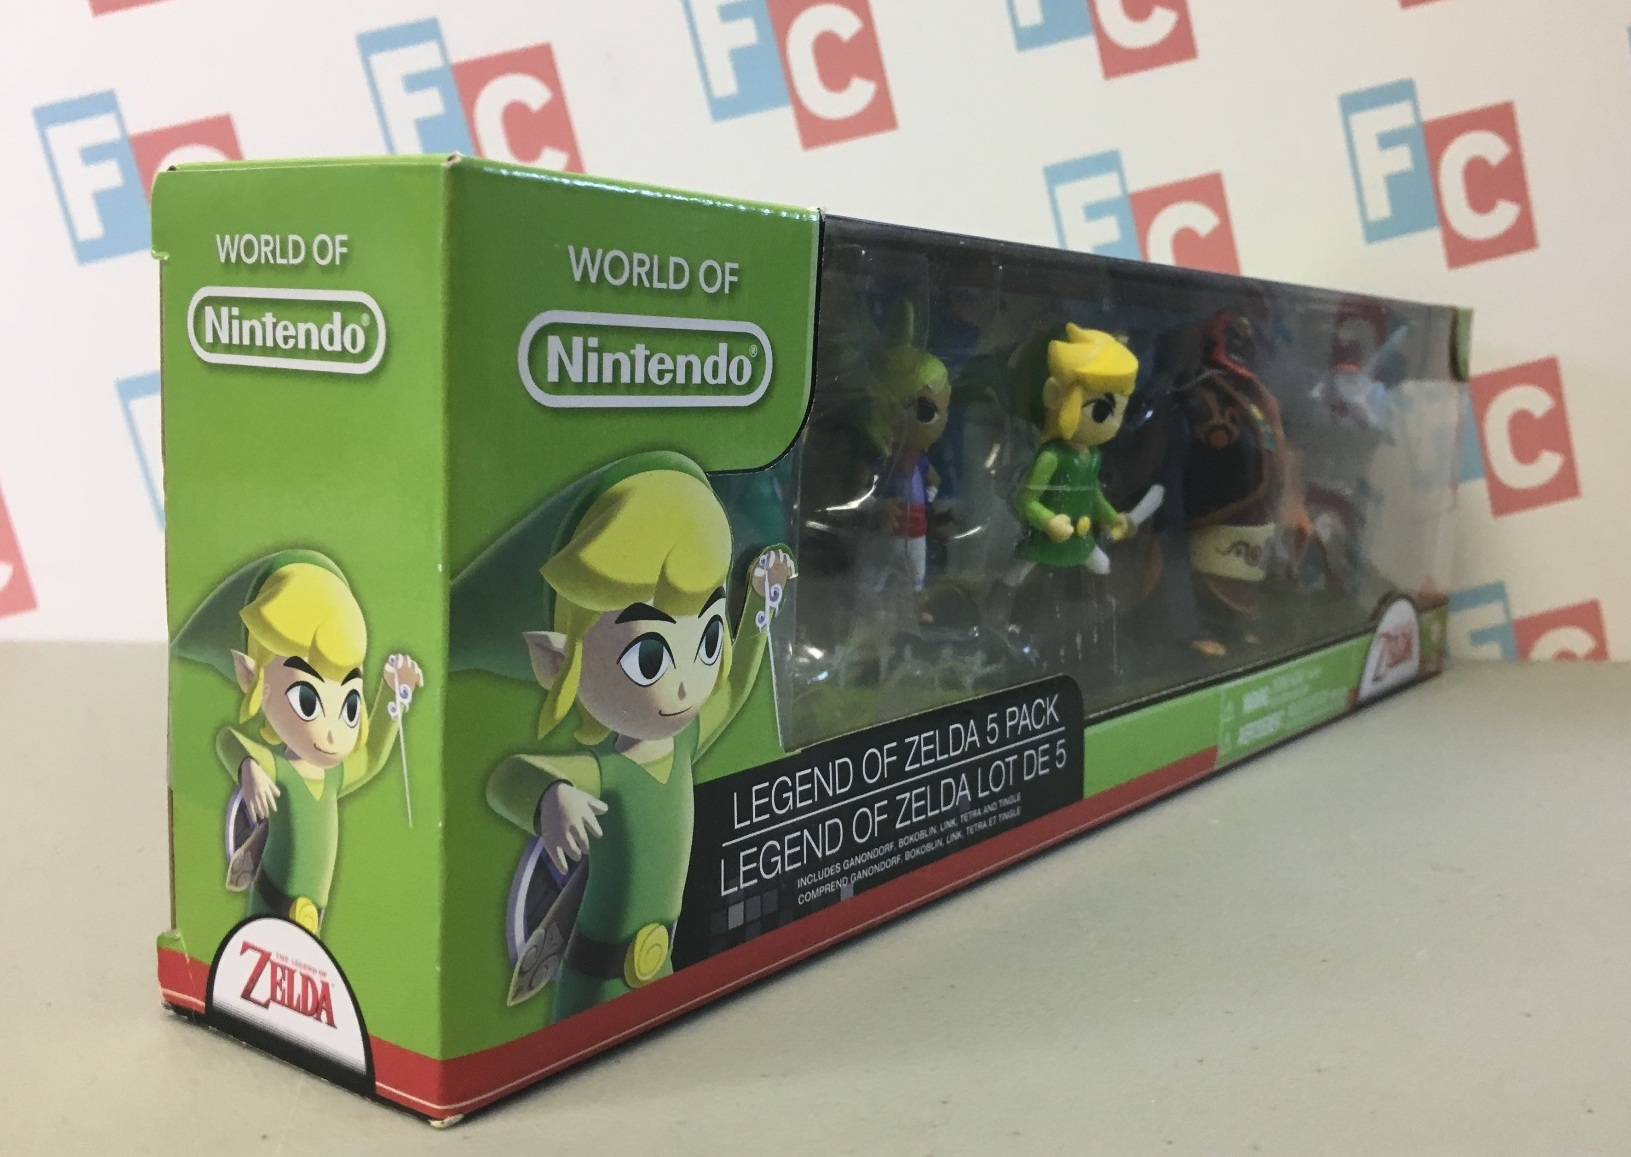 Legend of Zelda 5 Pack: Tingle, Tetra, Toon Link, Ganondorf, Bokoblin